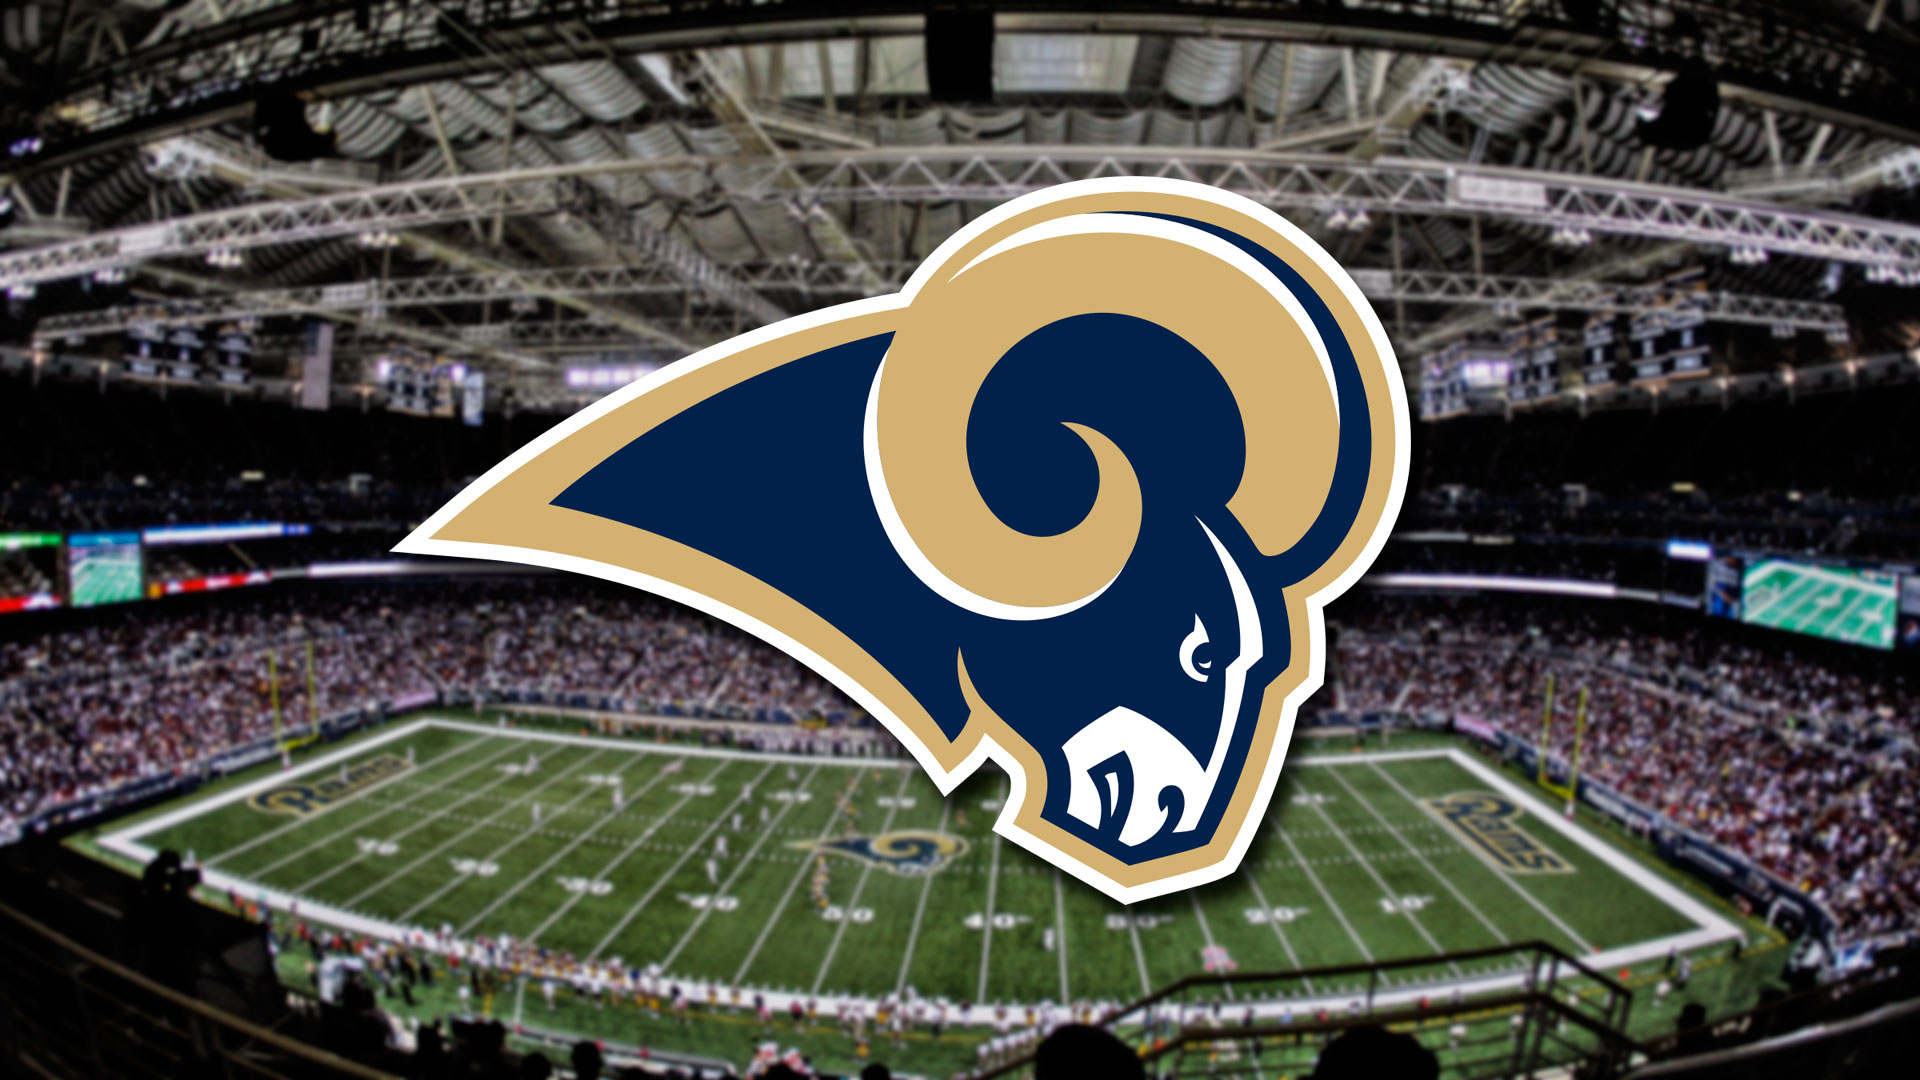 Nfl Must Get On With It And Finalize Rams Move To L A